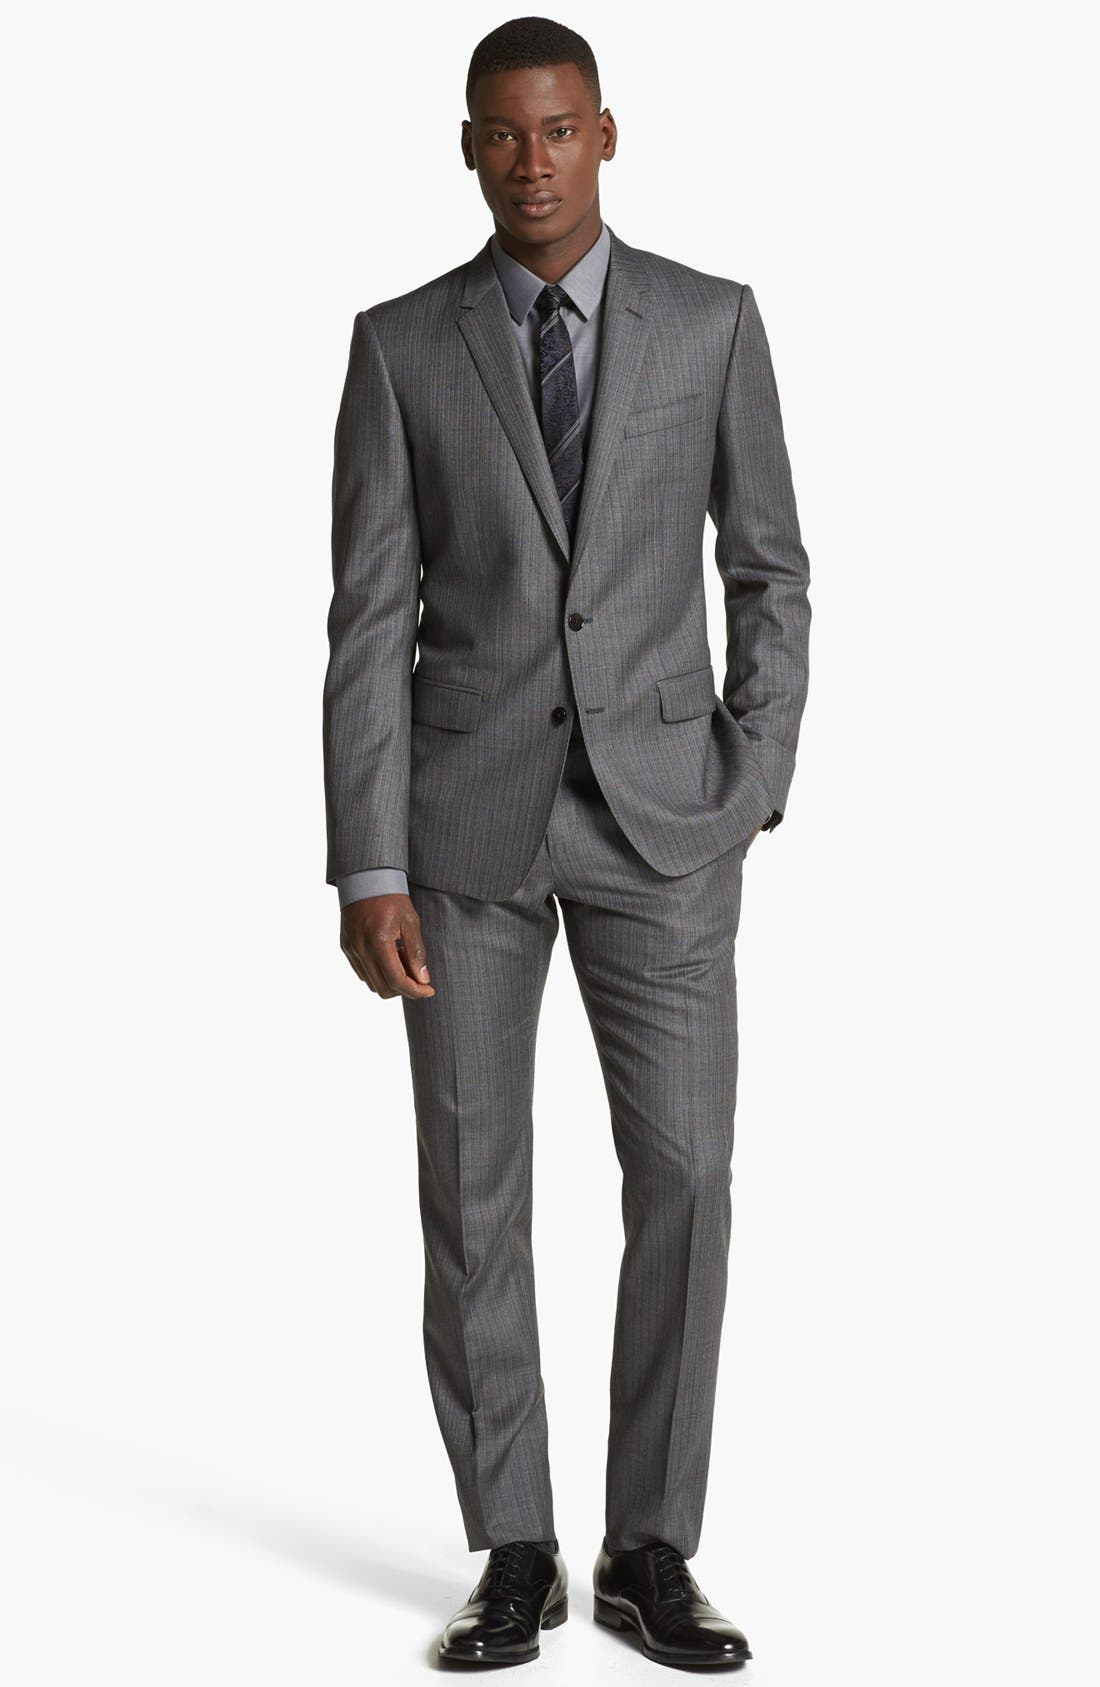 Alternate Image 1 Selected - Dolce&Gabbana 'Martini' Herringbone Wool Suit